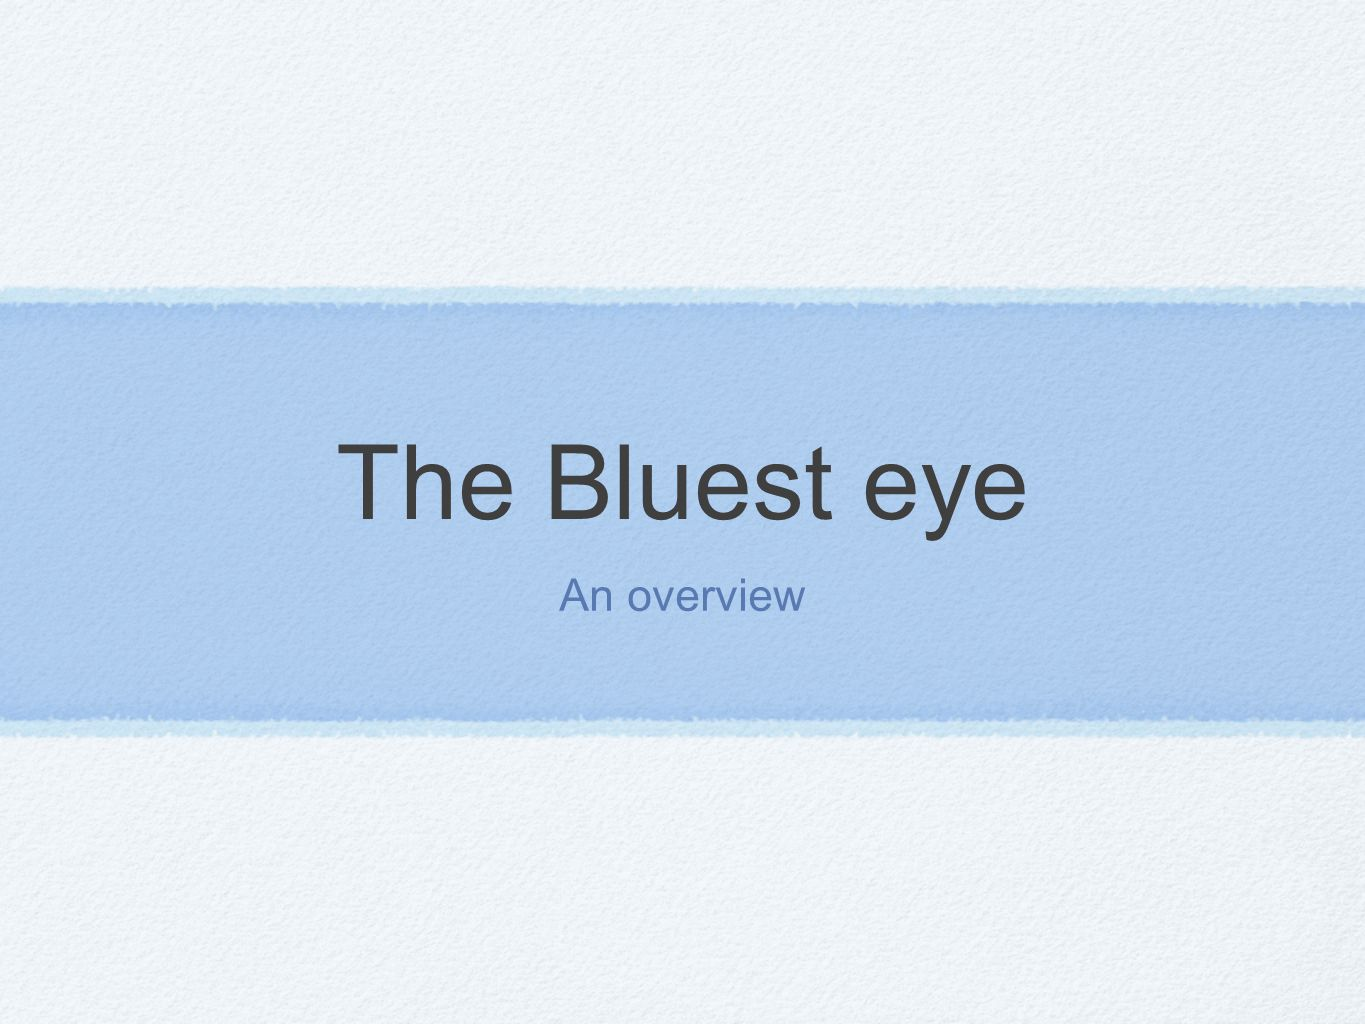 The Bluest eye An overview